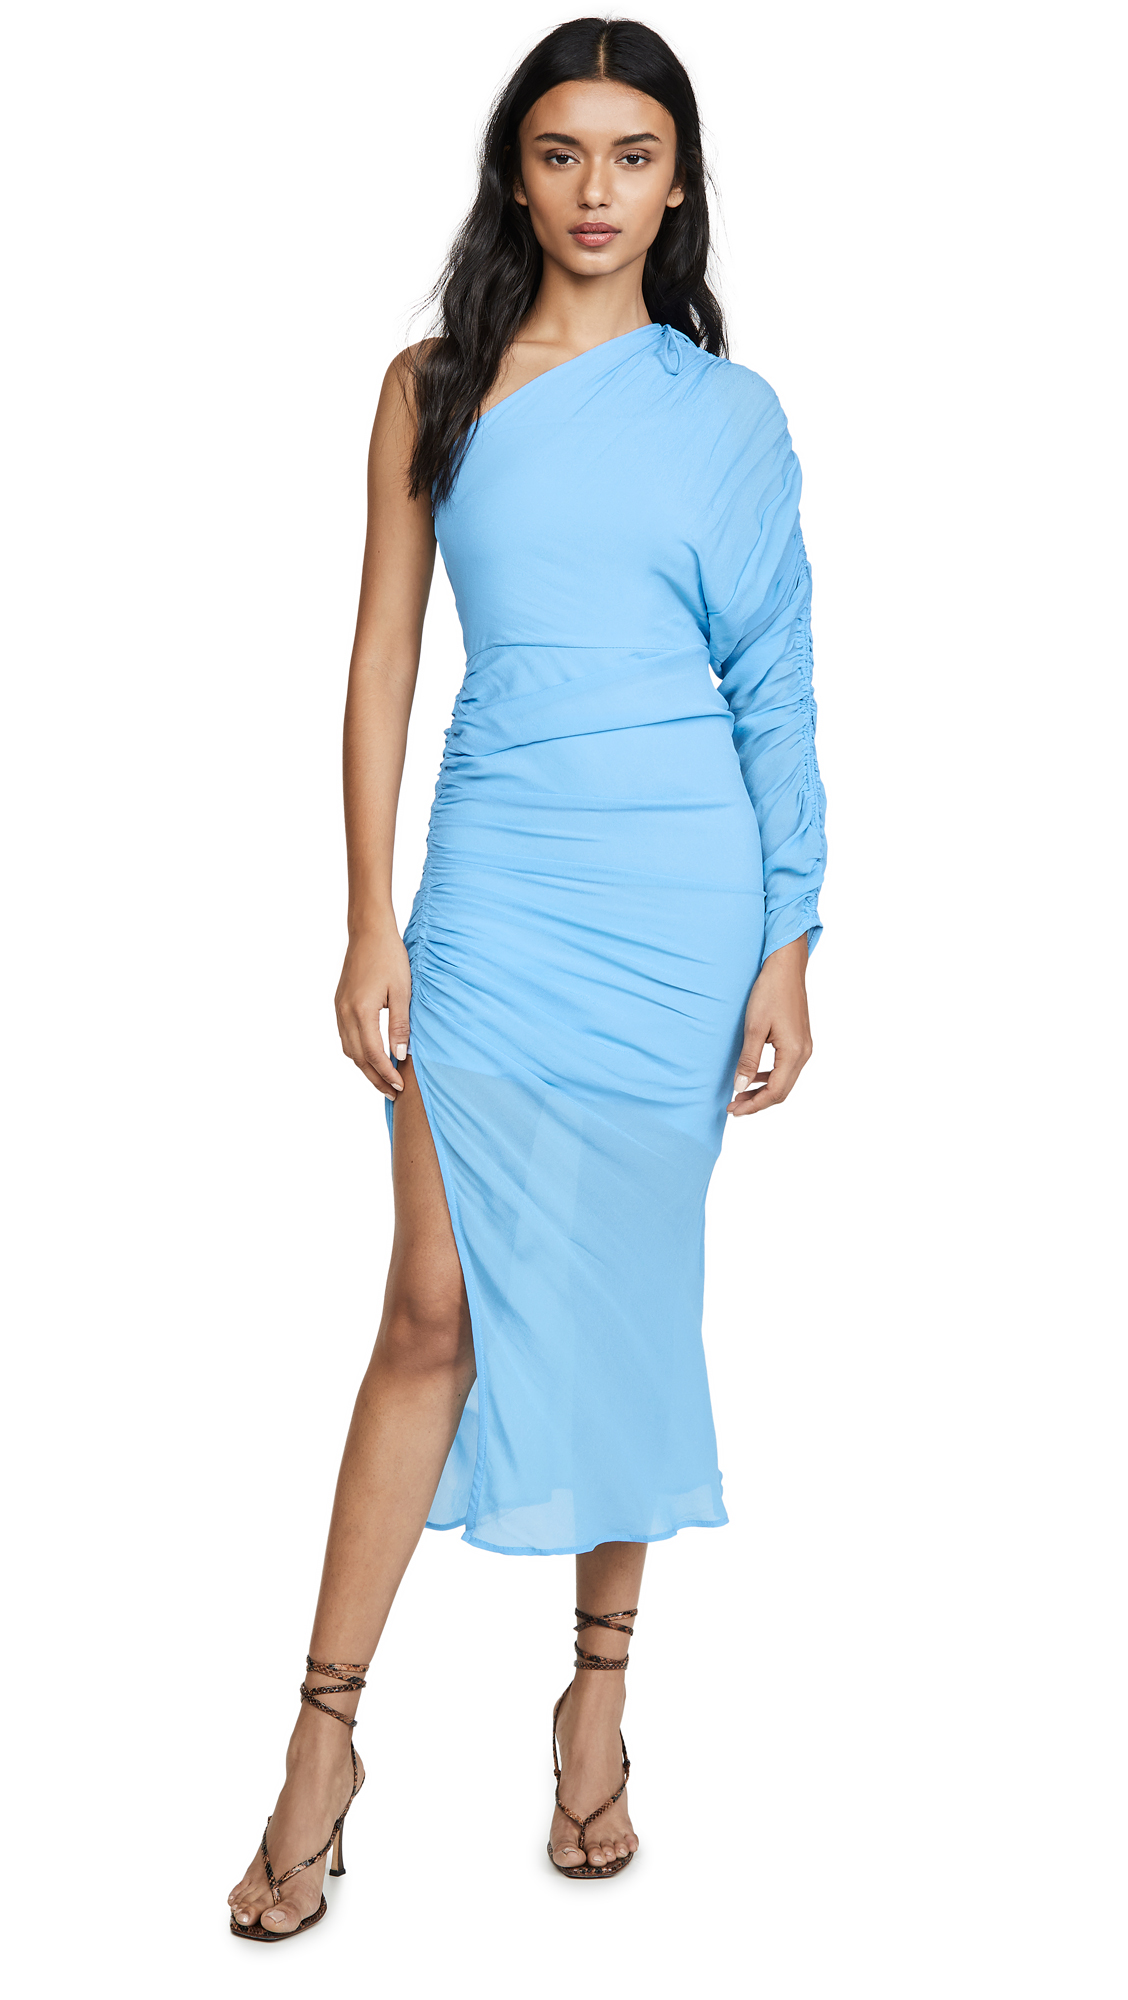 Manning Cartell Australia Zero Gravity Dress - 30% Off Sale